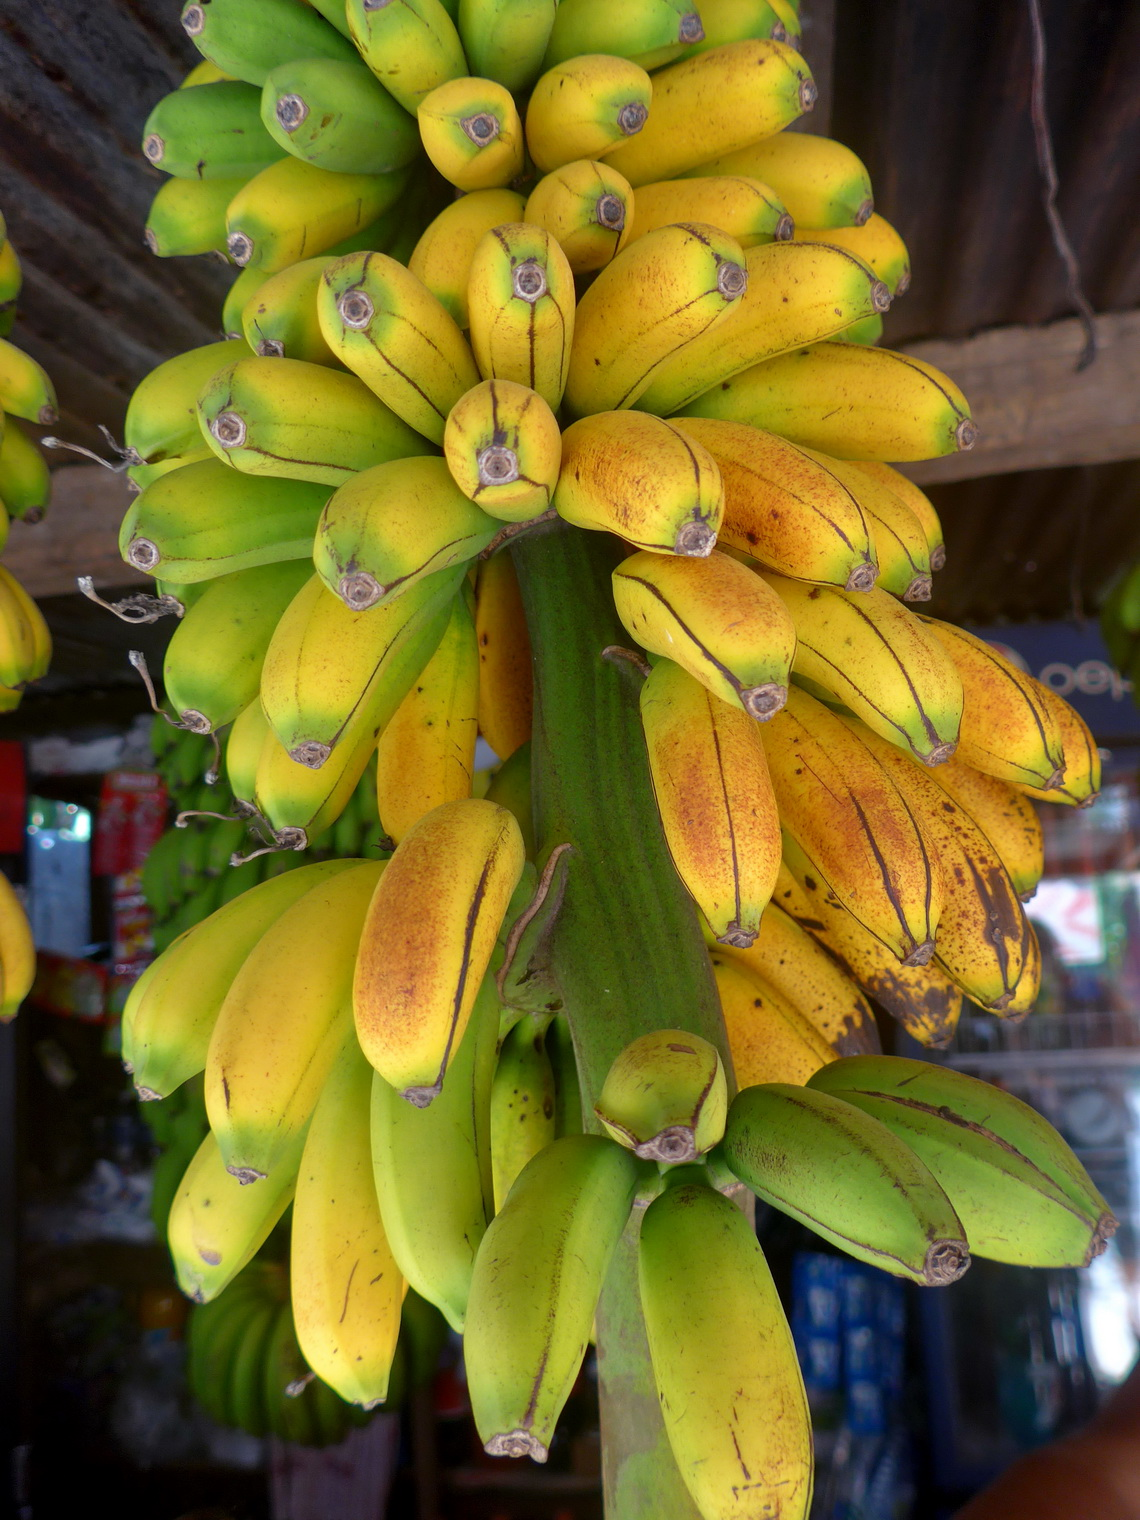 Bananas of tropical Union Juarez